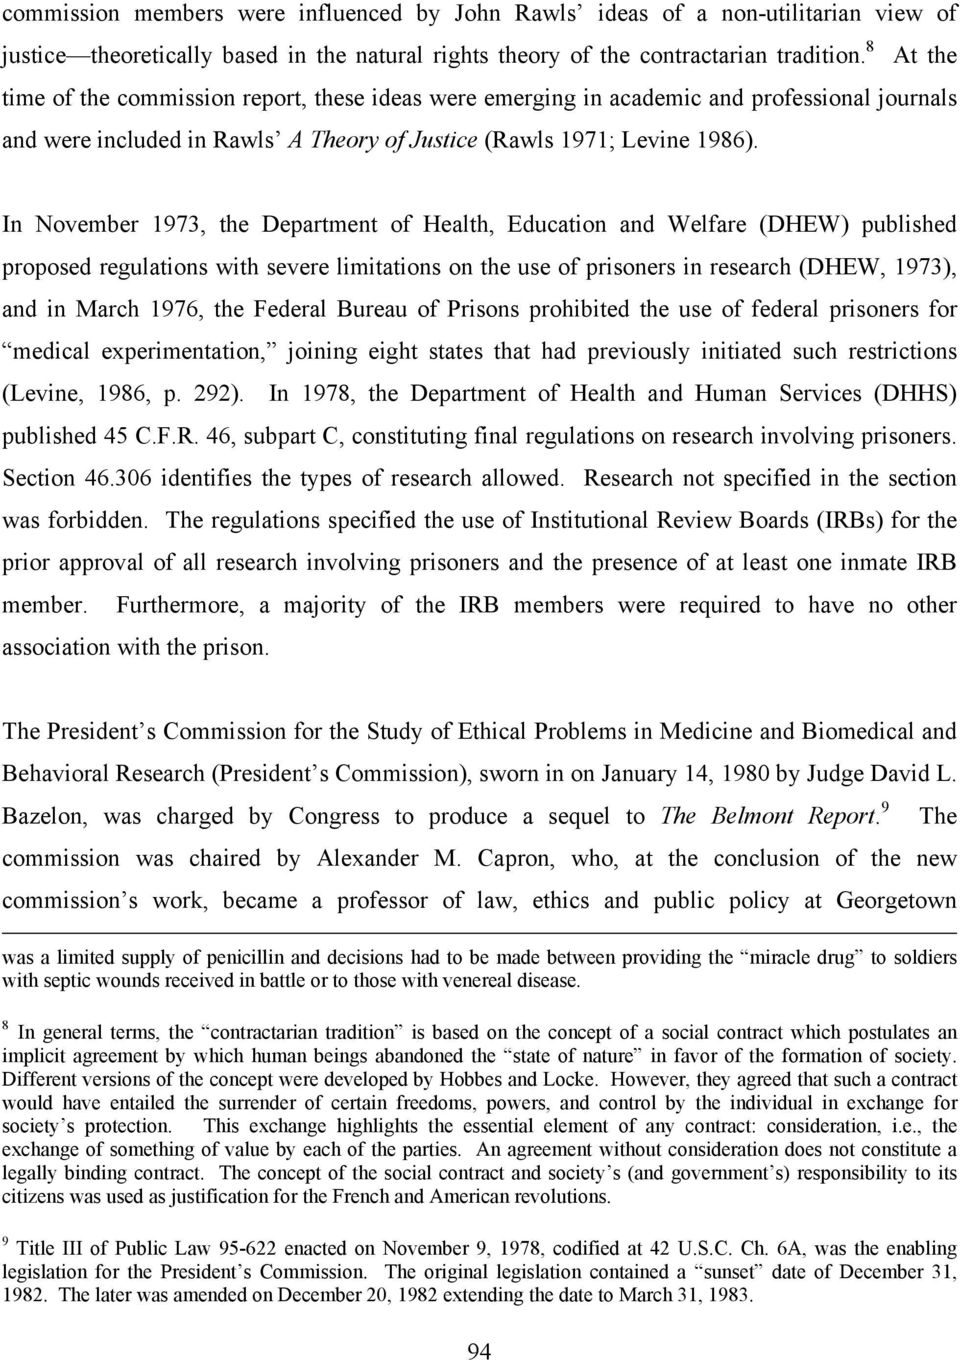 In November 1973, the Department of Health, Education and Welfare (DHEW) published proposed regulations with severe limitations on the use of prisoners in research (DHEW, 1973), and in March 1976,